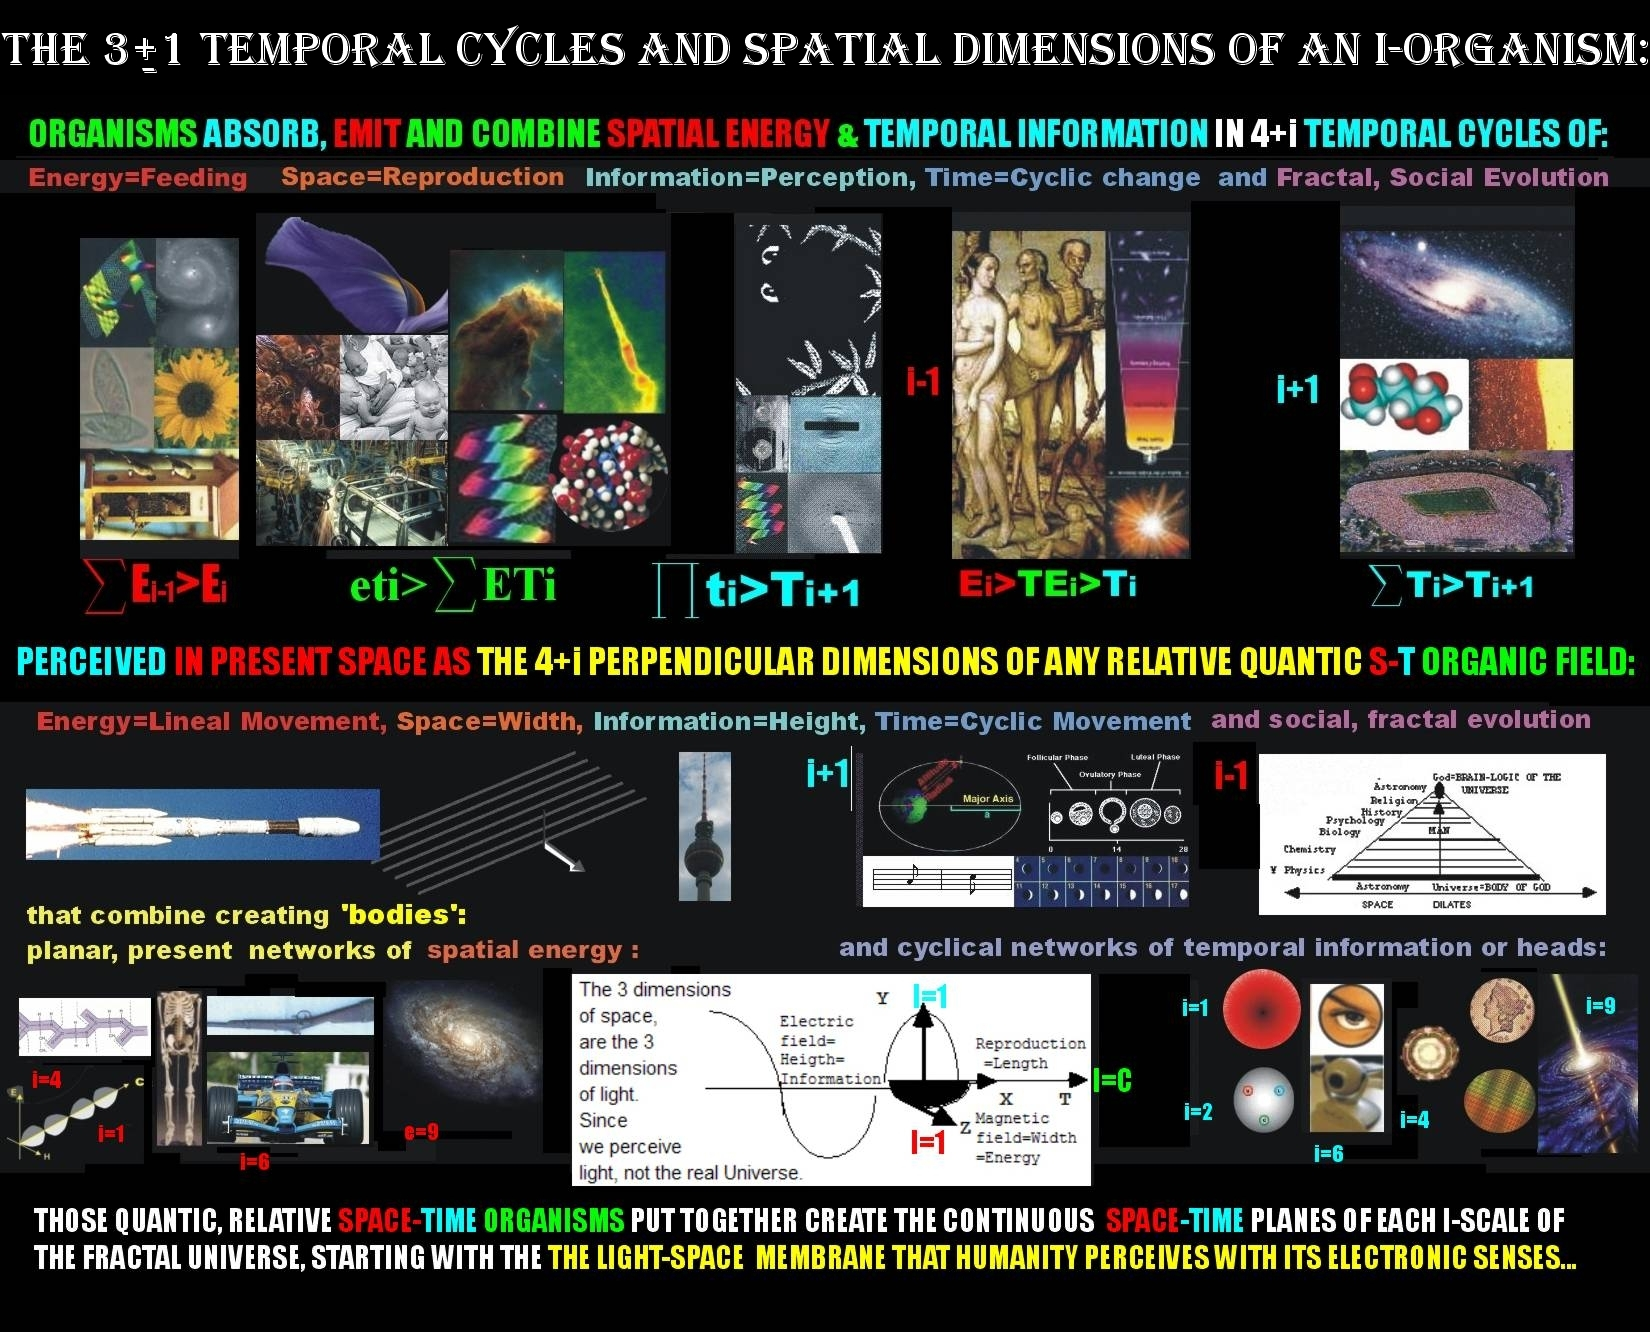 5DIMENSIONAL CYCLES